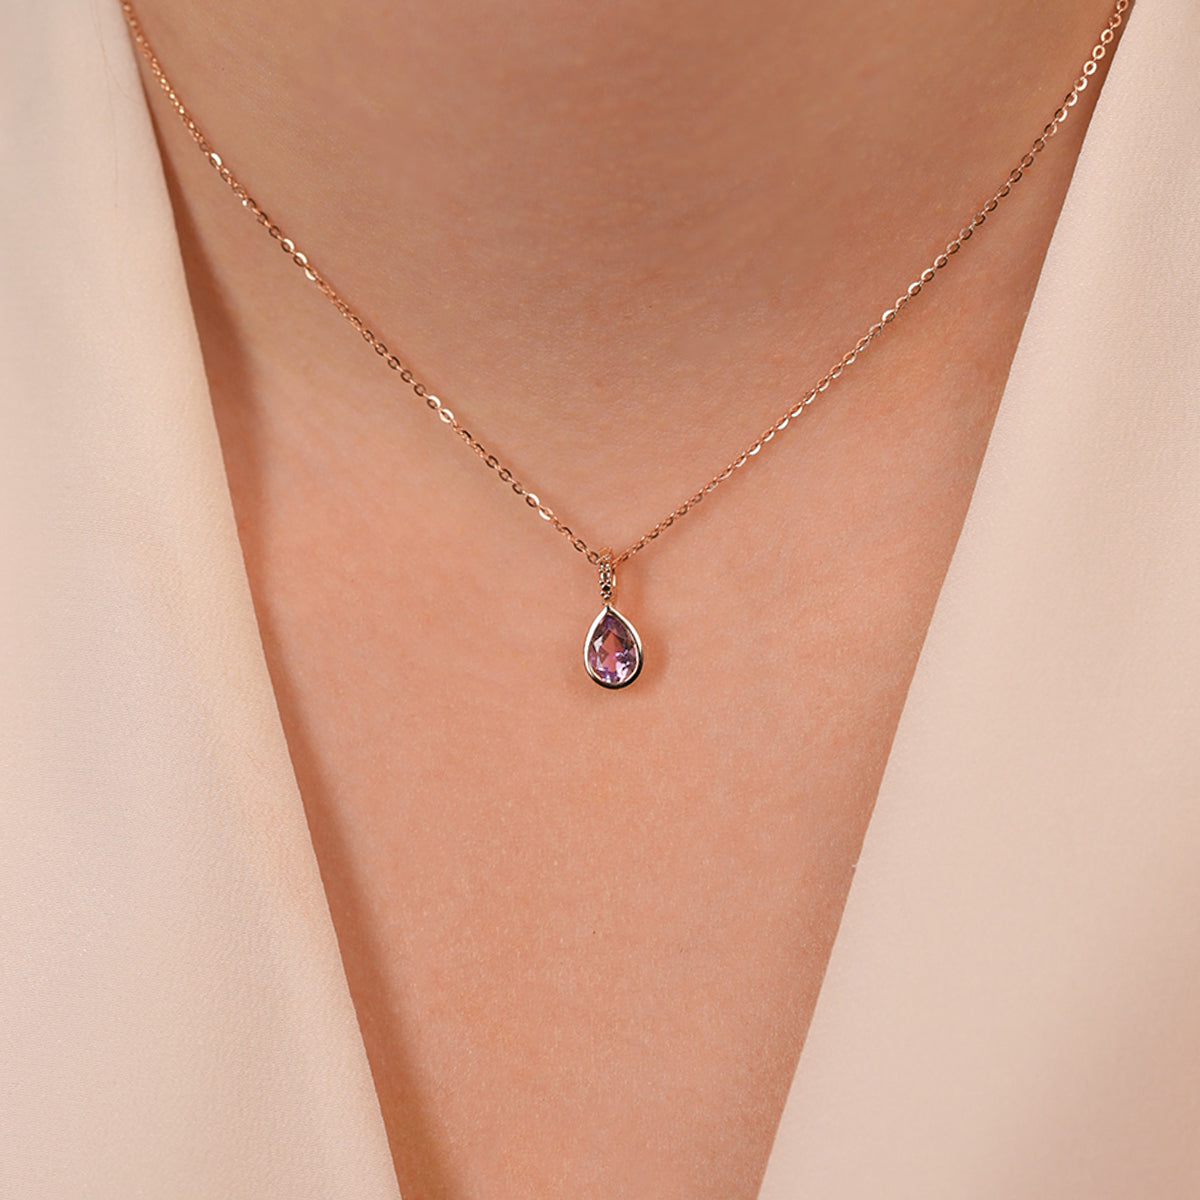 Tear Drop Amethyst Gem Stone Pendant Necklace With Adjustable Chain - estellacollection